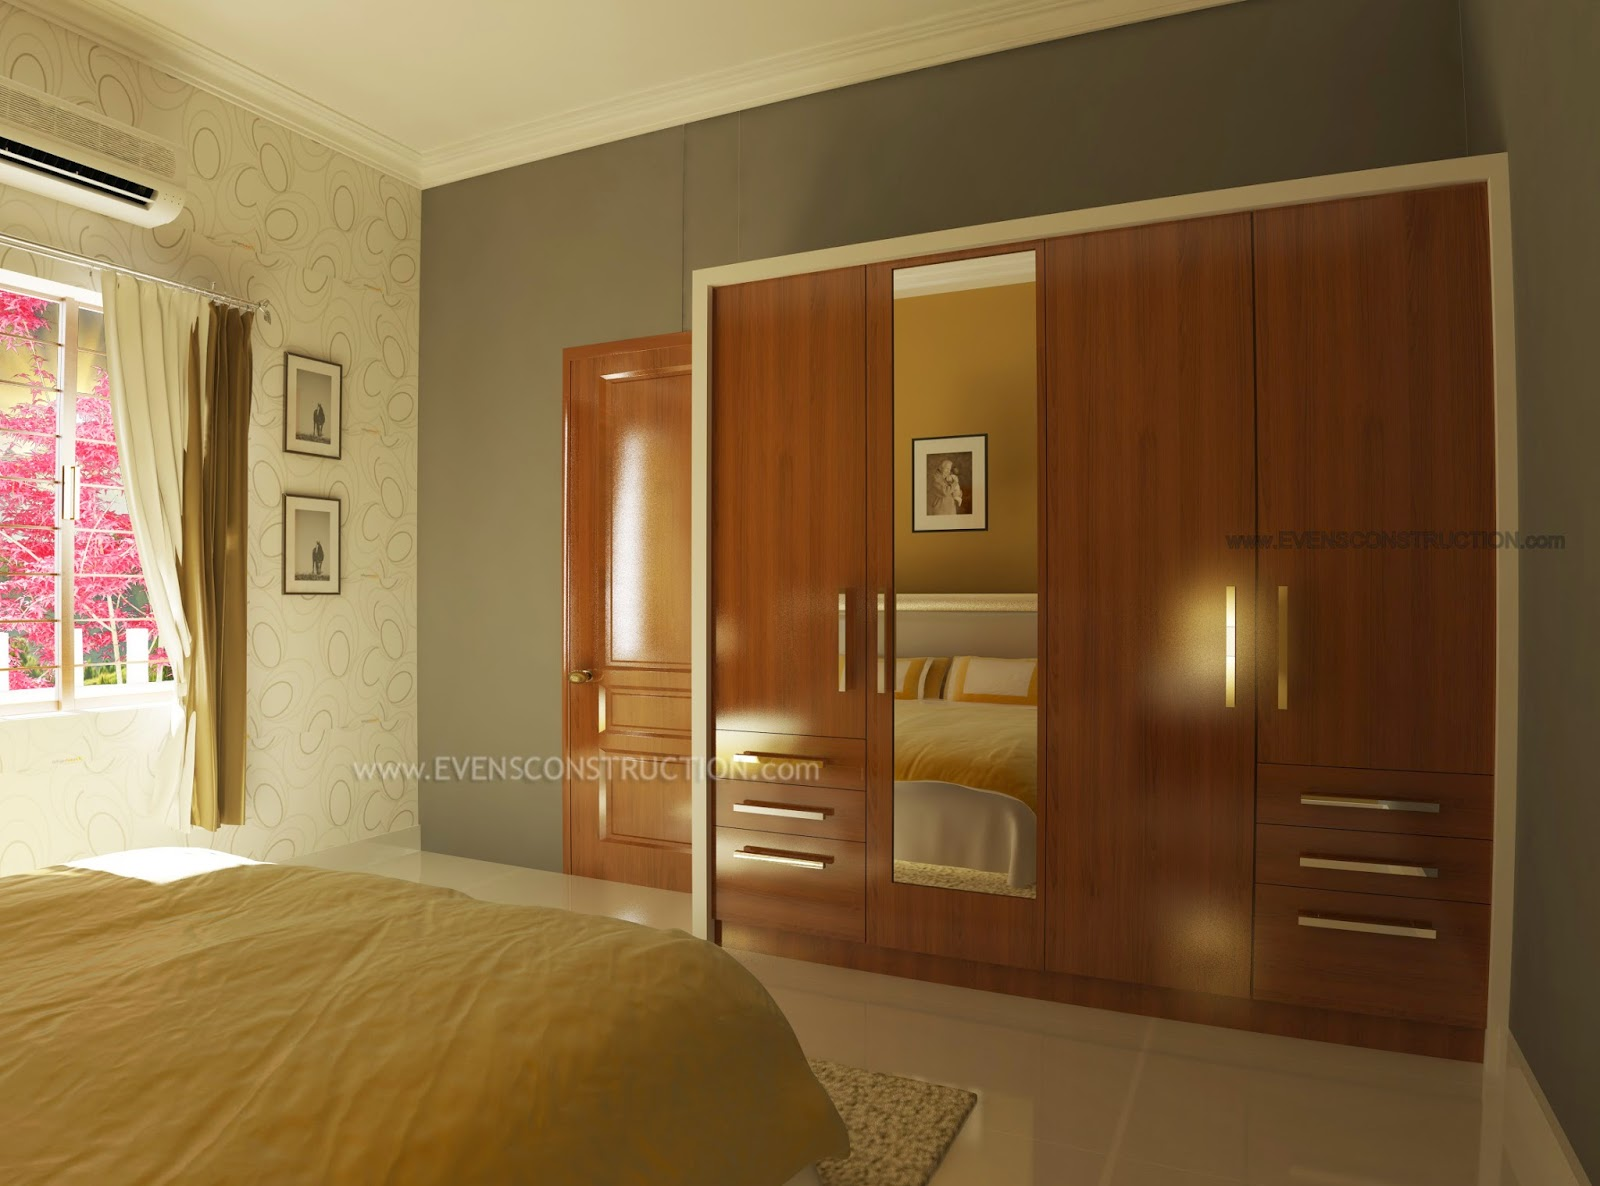 Evens construction pvt ltd wardrobe in master bedroom Wardrobe in master bedroom